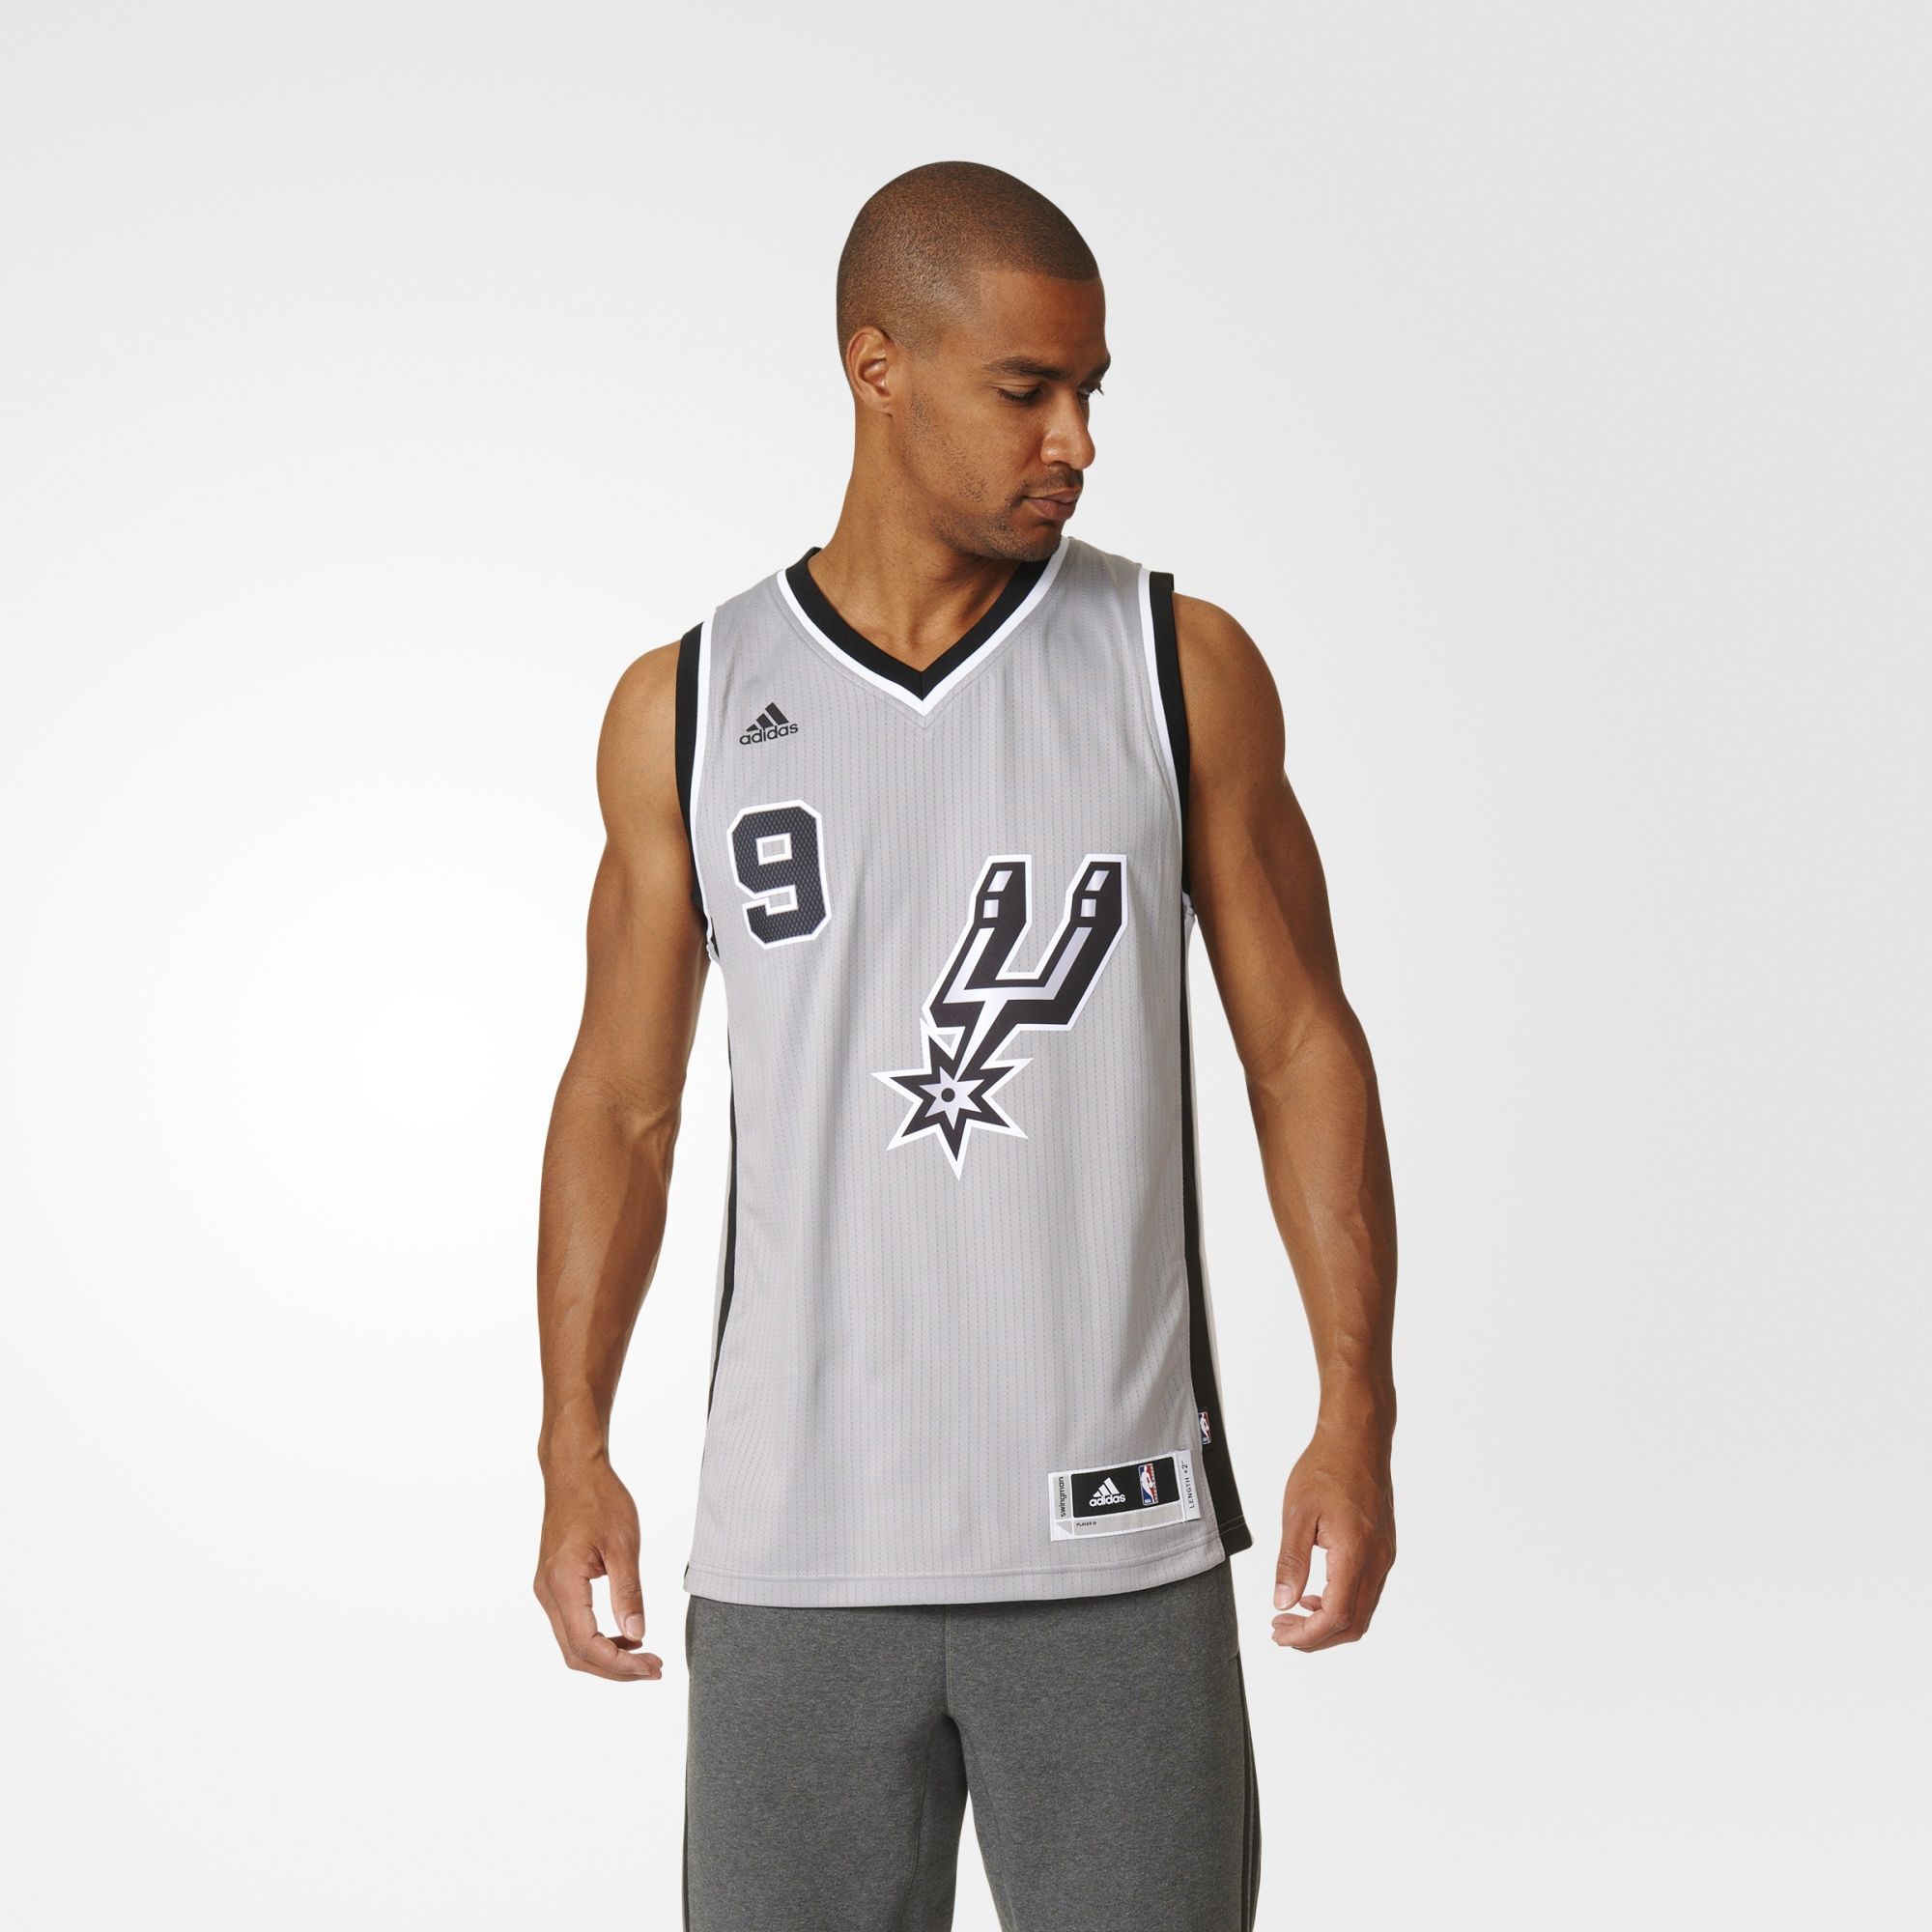 a280e4bc9db adidas NBA San Antonio Spurs Tony Parker Swingman Jersey - NBA Shop San  Antonio Spurs Merchandise - Superfanas.lt